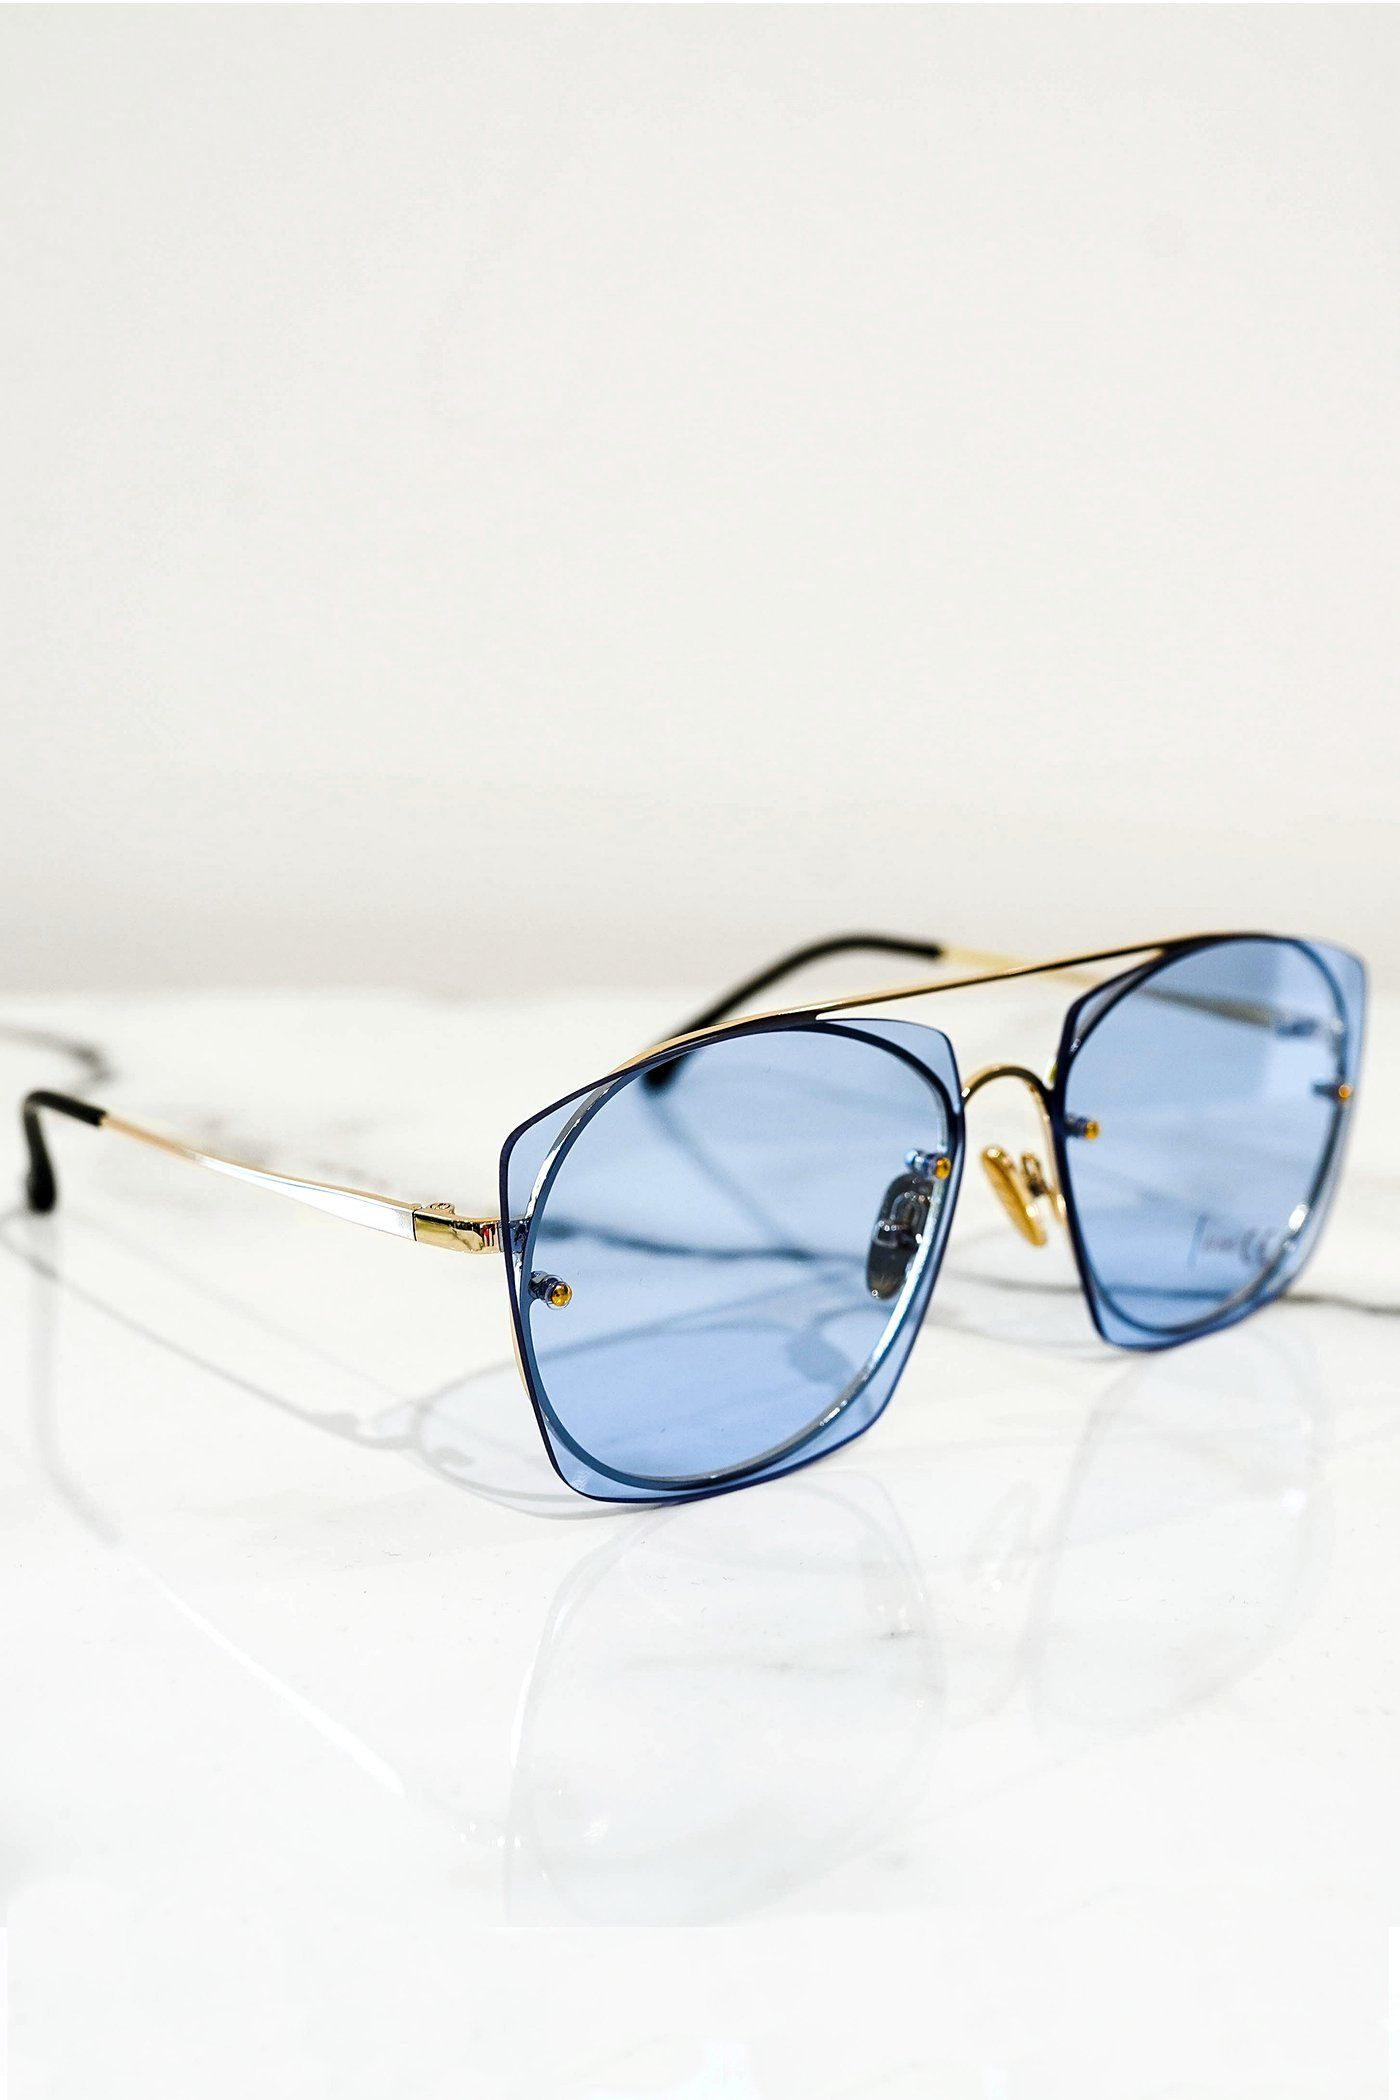 Aviator sunglasses gold With blue lens - PEGADOR - Dominate the Hype